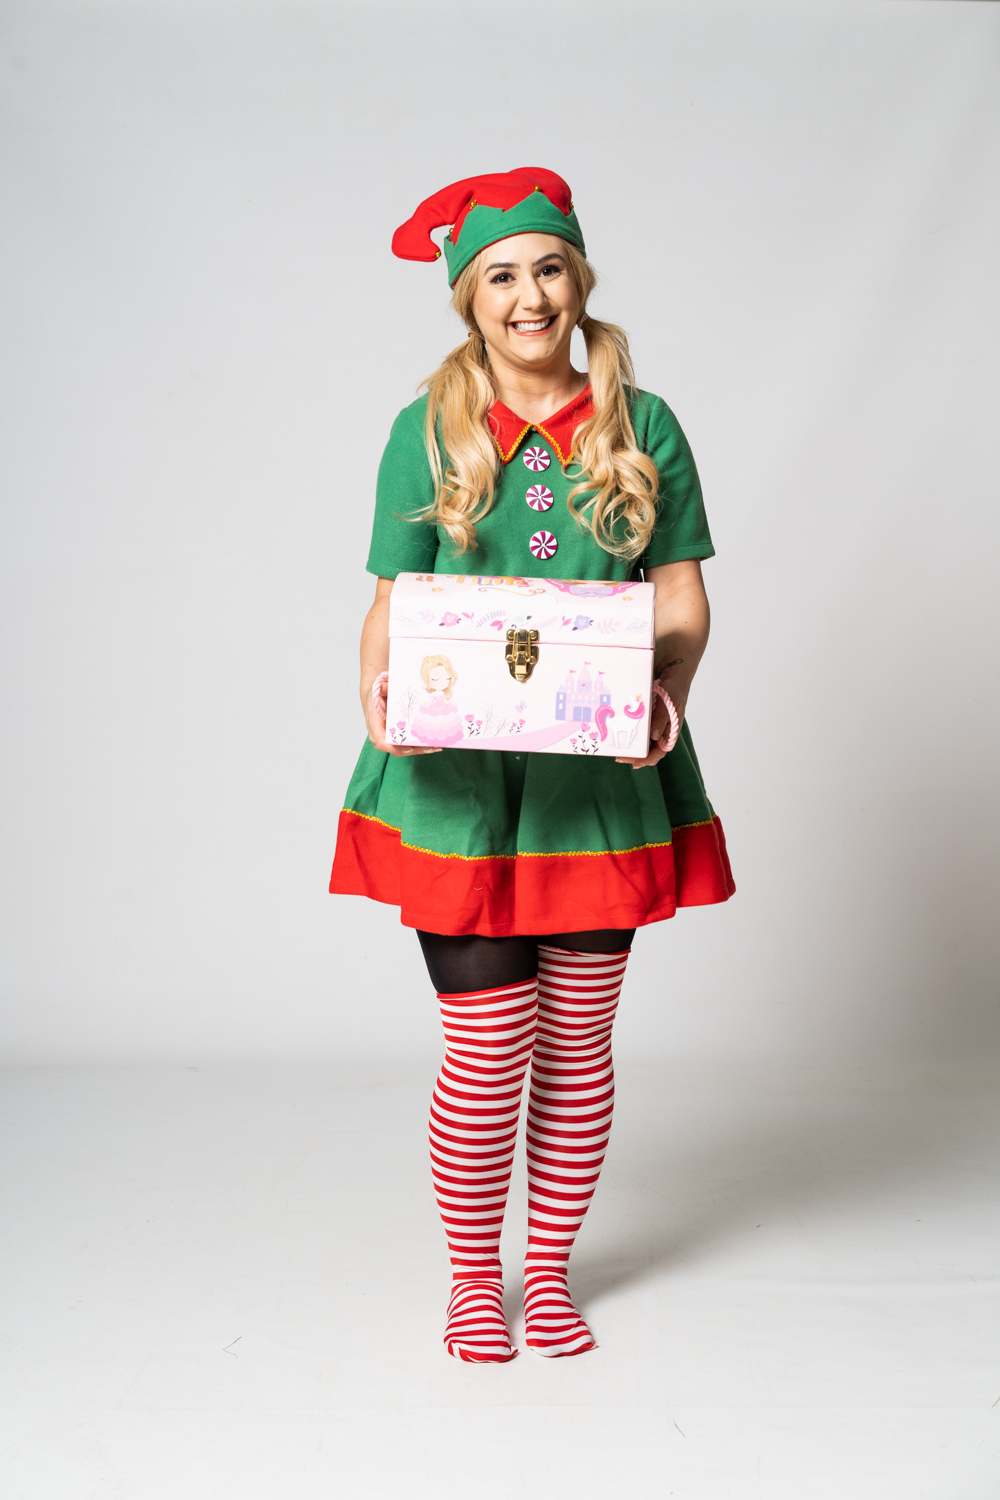 Christmas Elf party entertainer